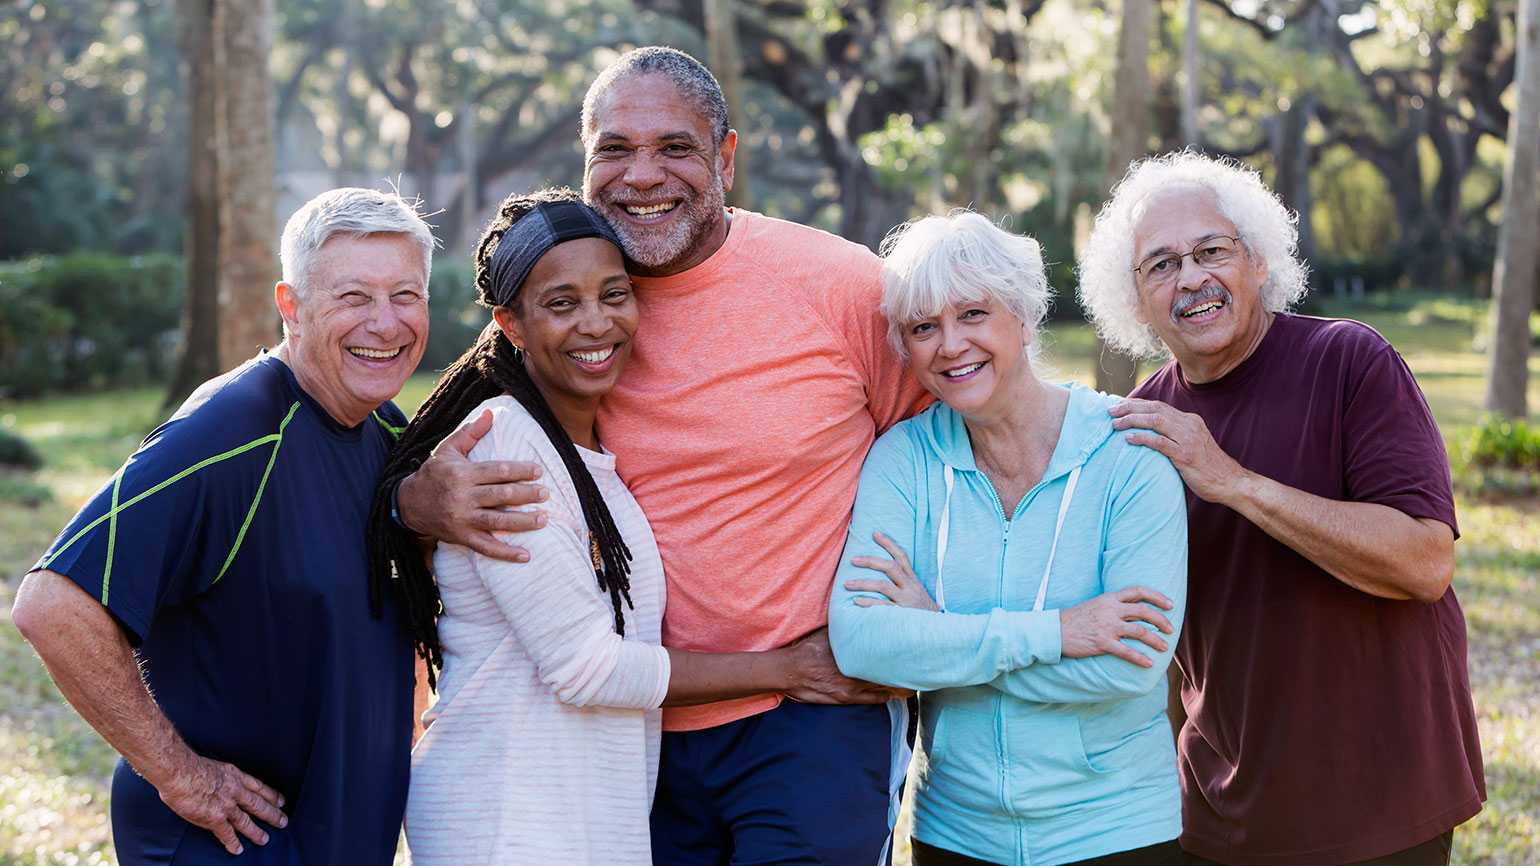 A happy group of senior adults